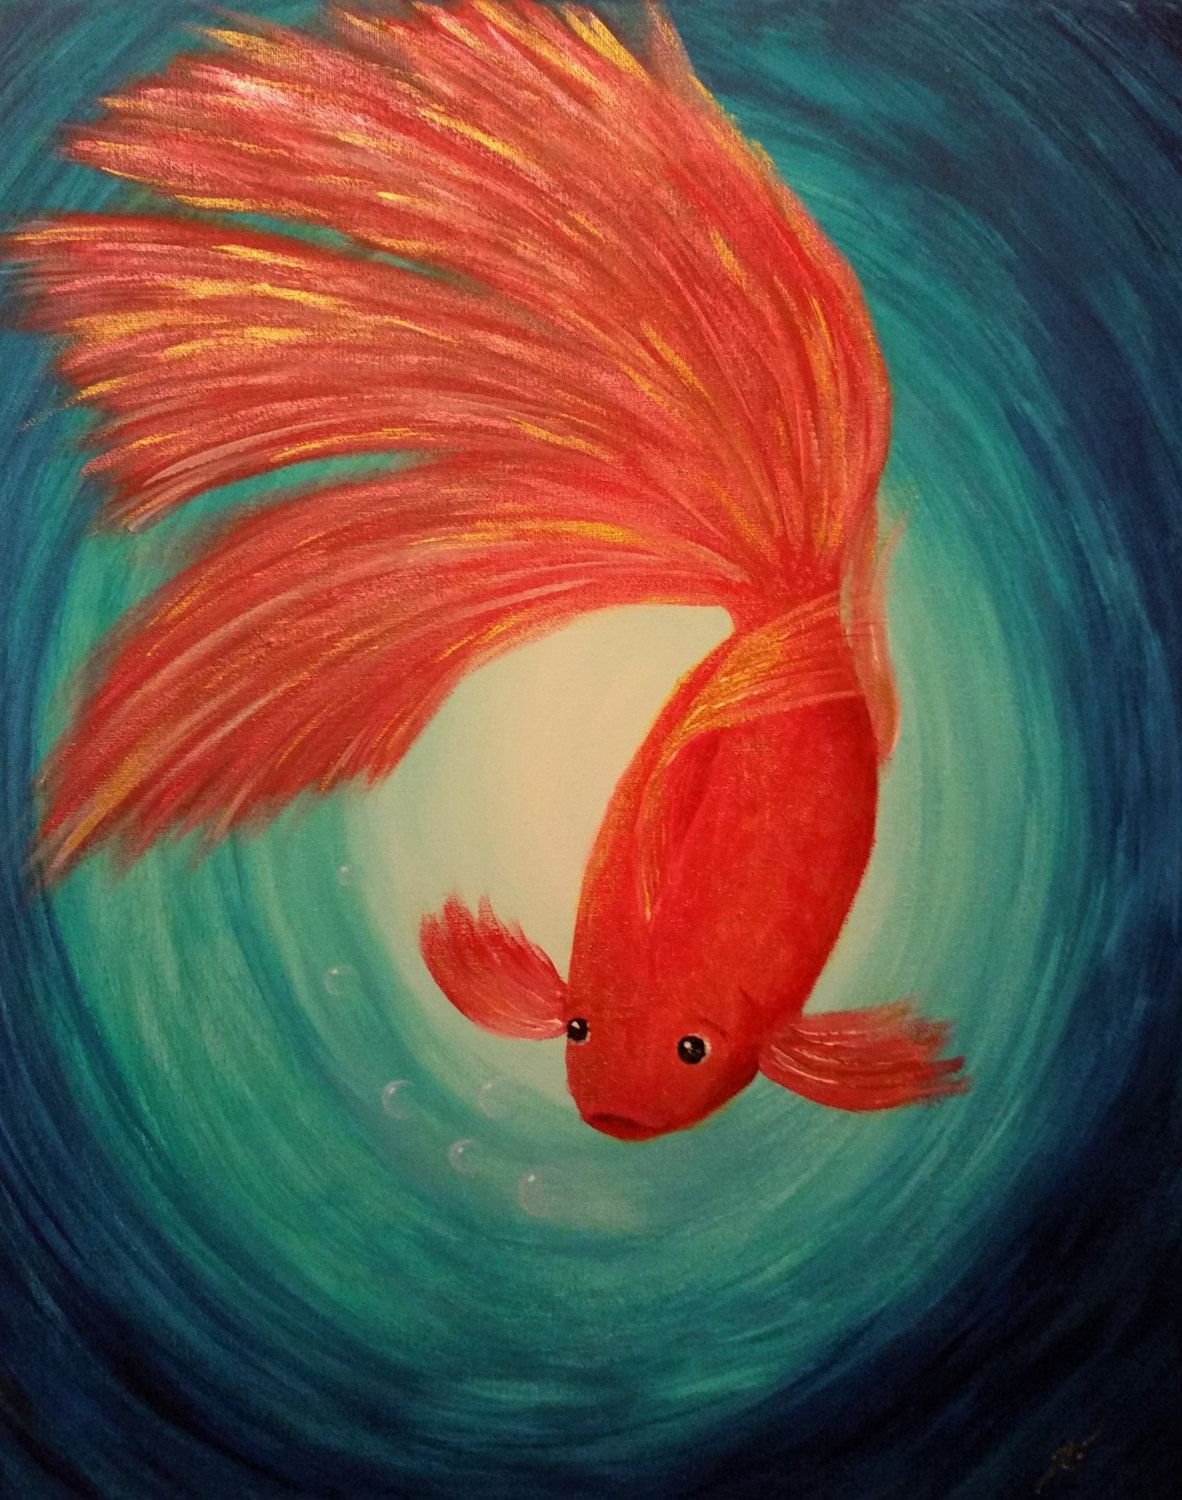 Home interiors and gifts paintings - Gold Fish Original Acrylic Painting On Canvas Fine Energy Art Best Gift Home Interior Decor